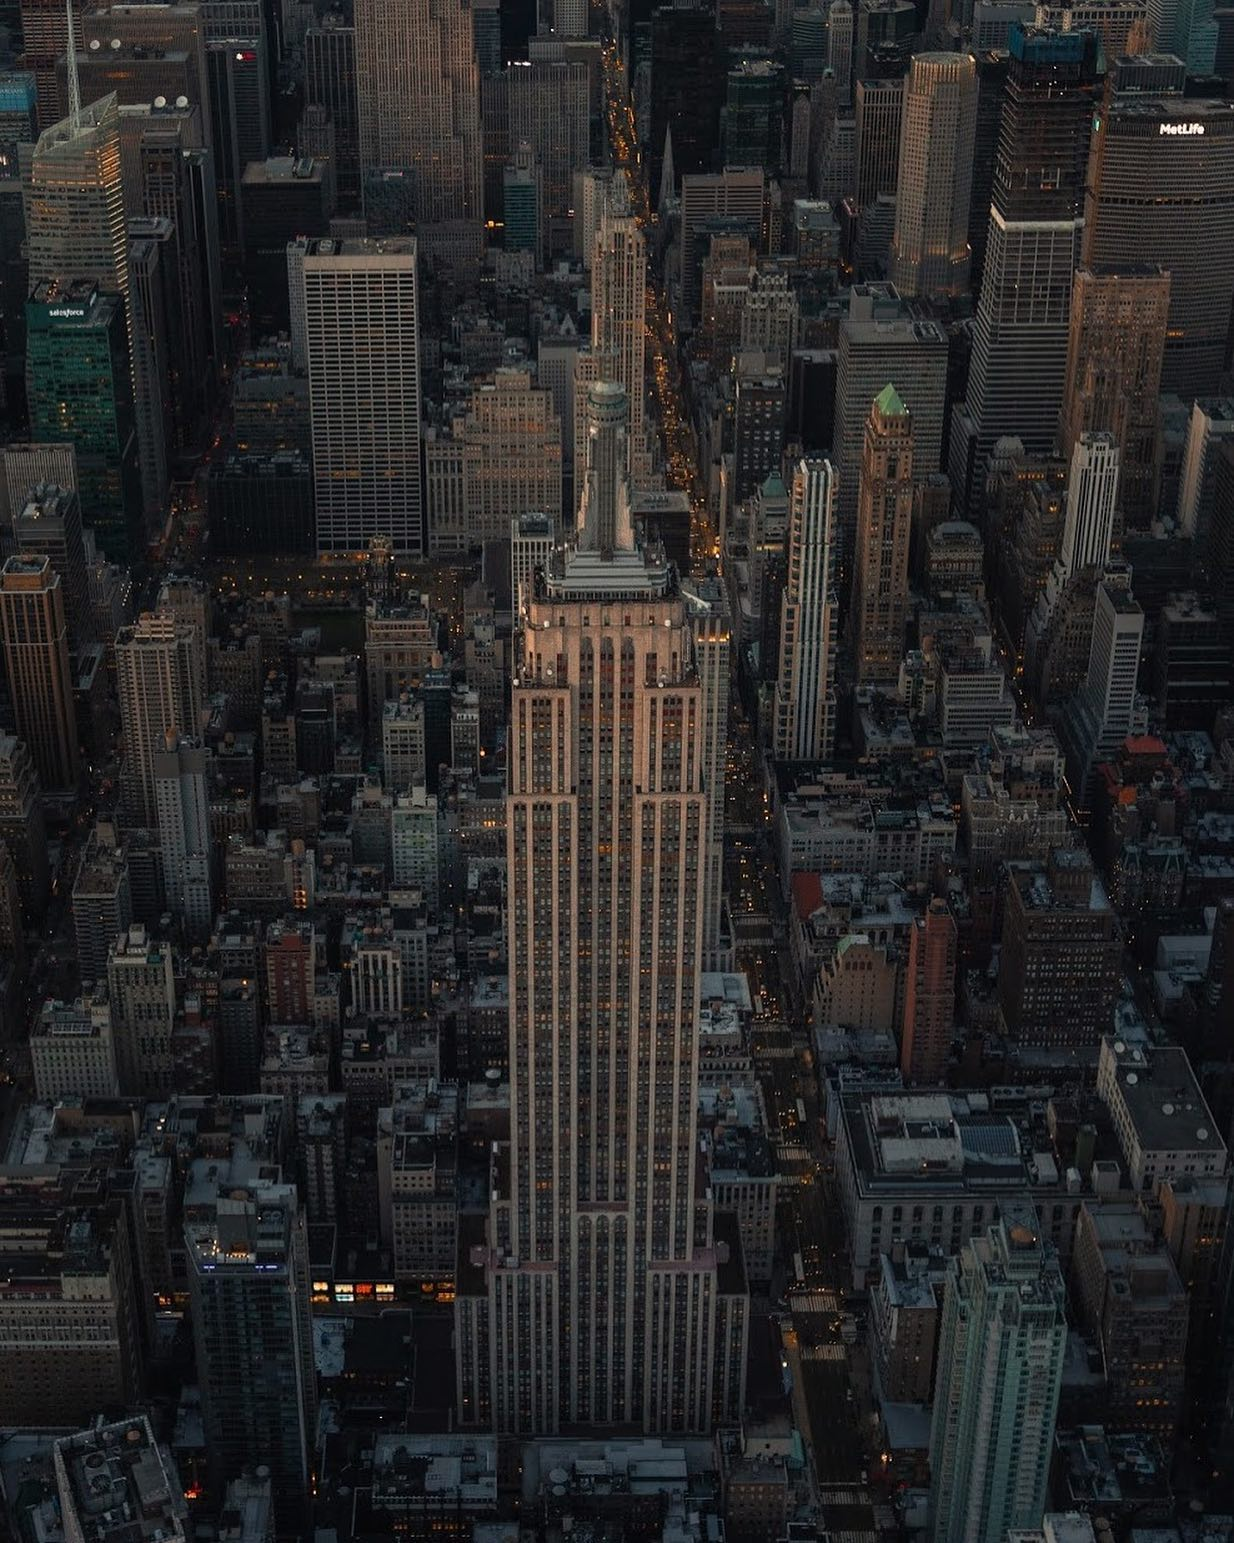 NYC Student Housing Locations | Student & Intern Housing in NYC: EHS